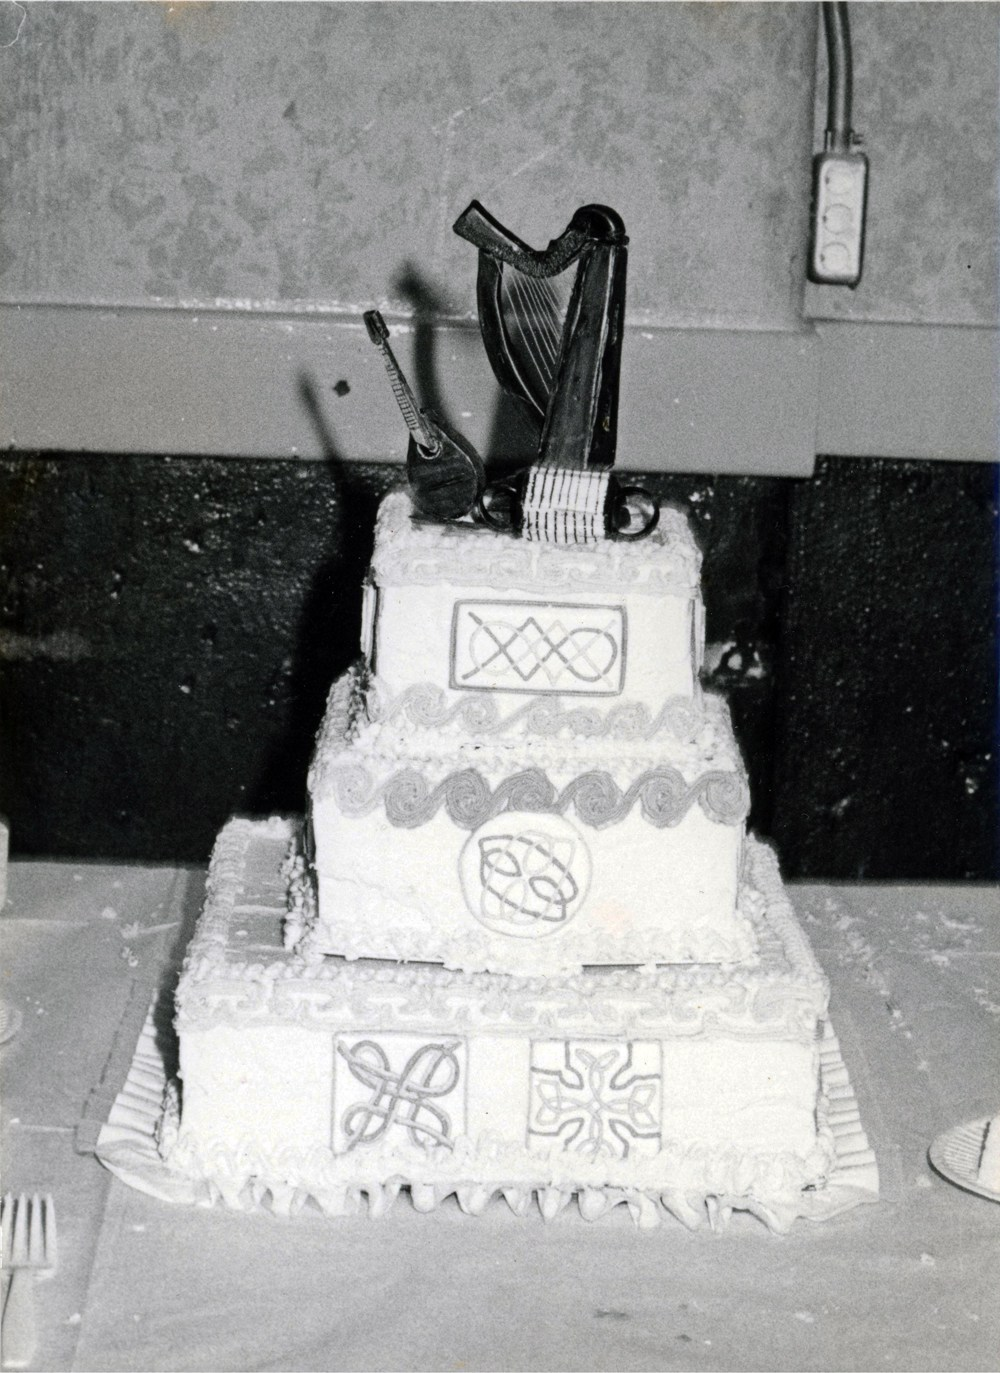 Glorious white wedding cake with knotwork decorating the sides, obviously hand done with love. On top sits a harp!